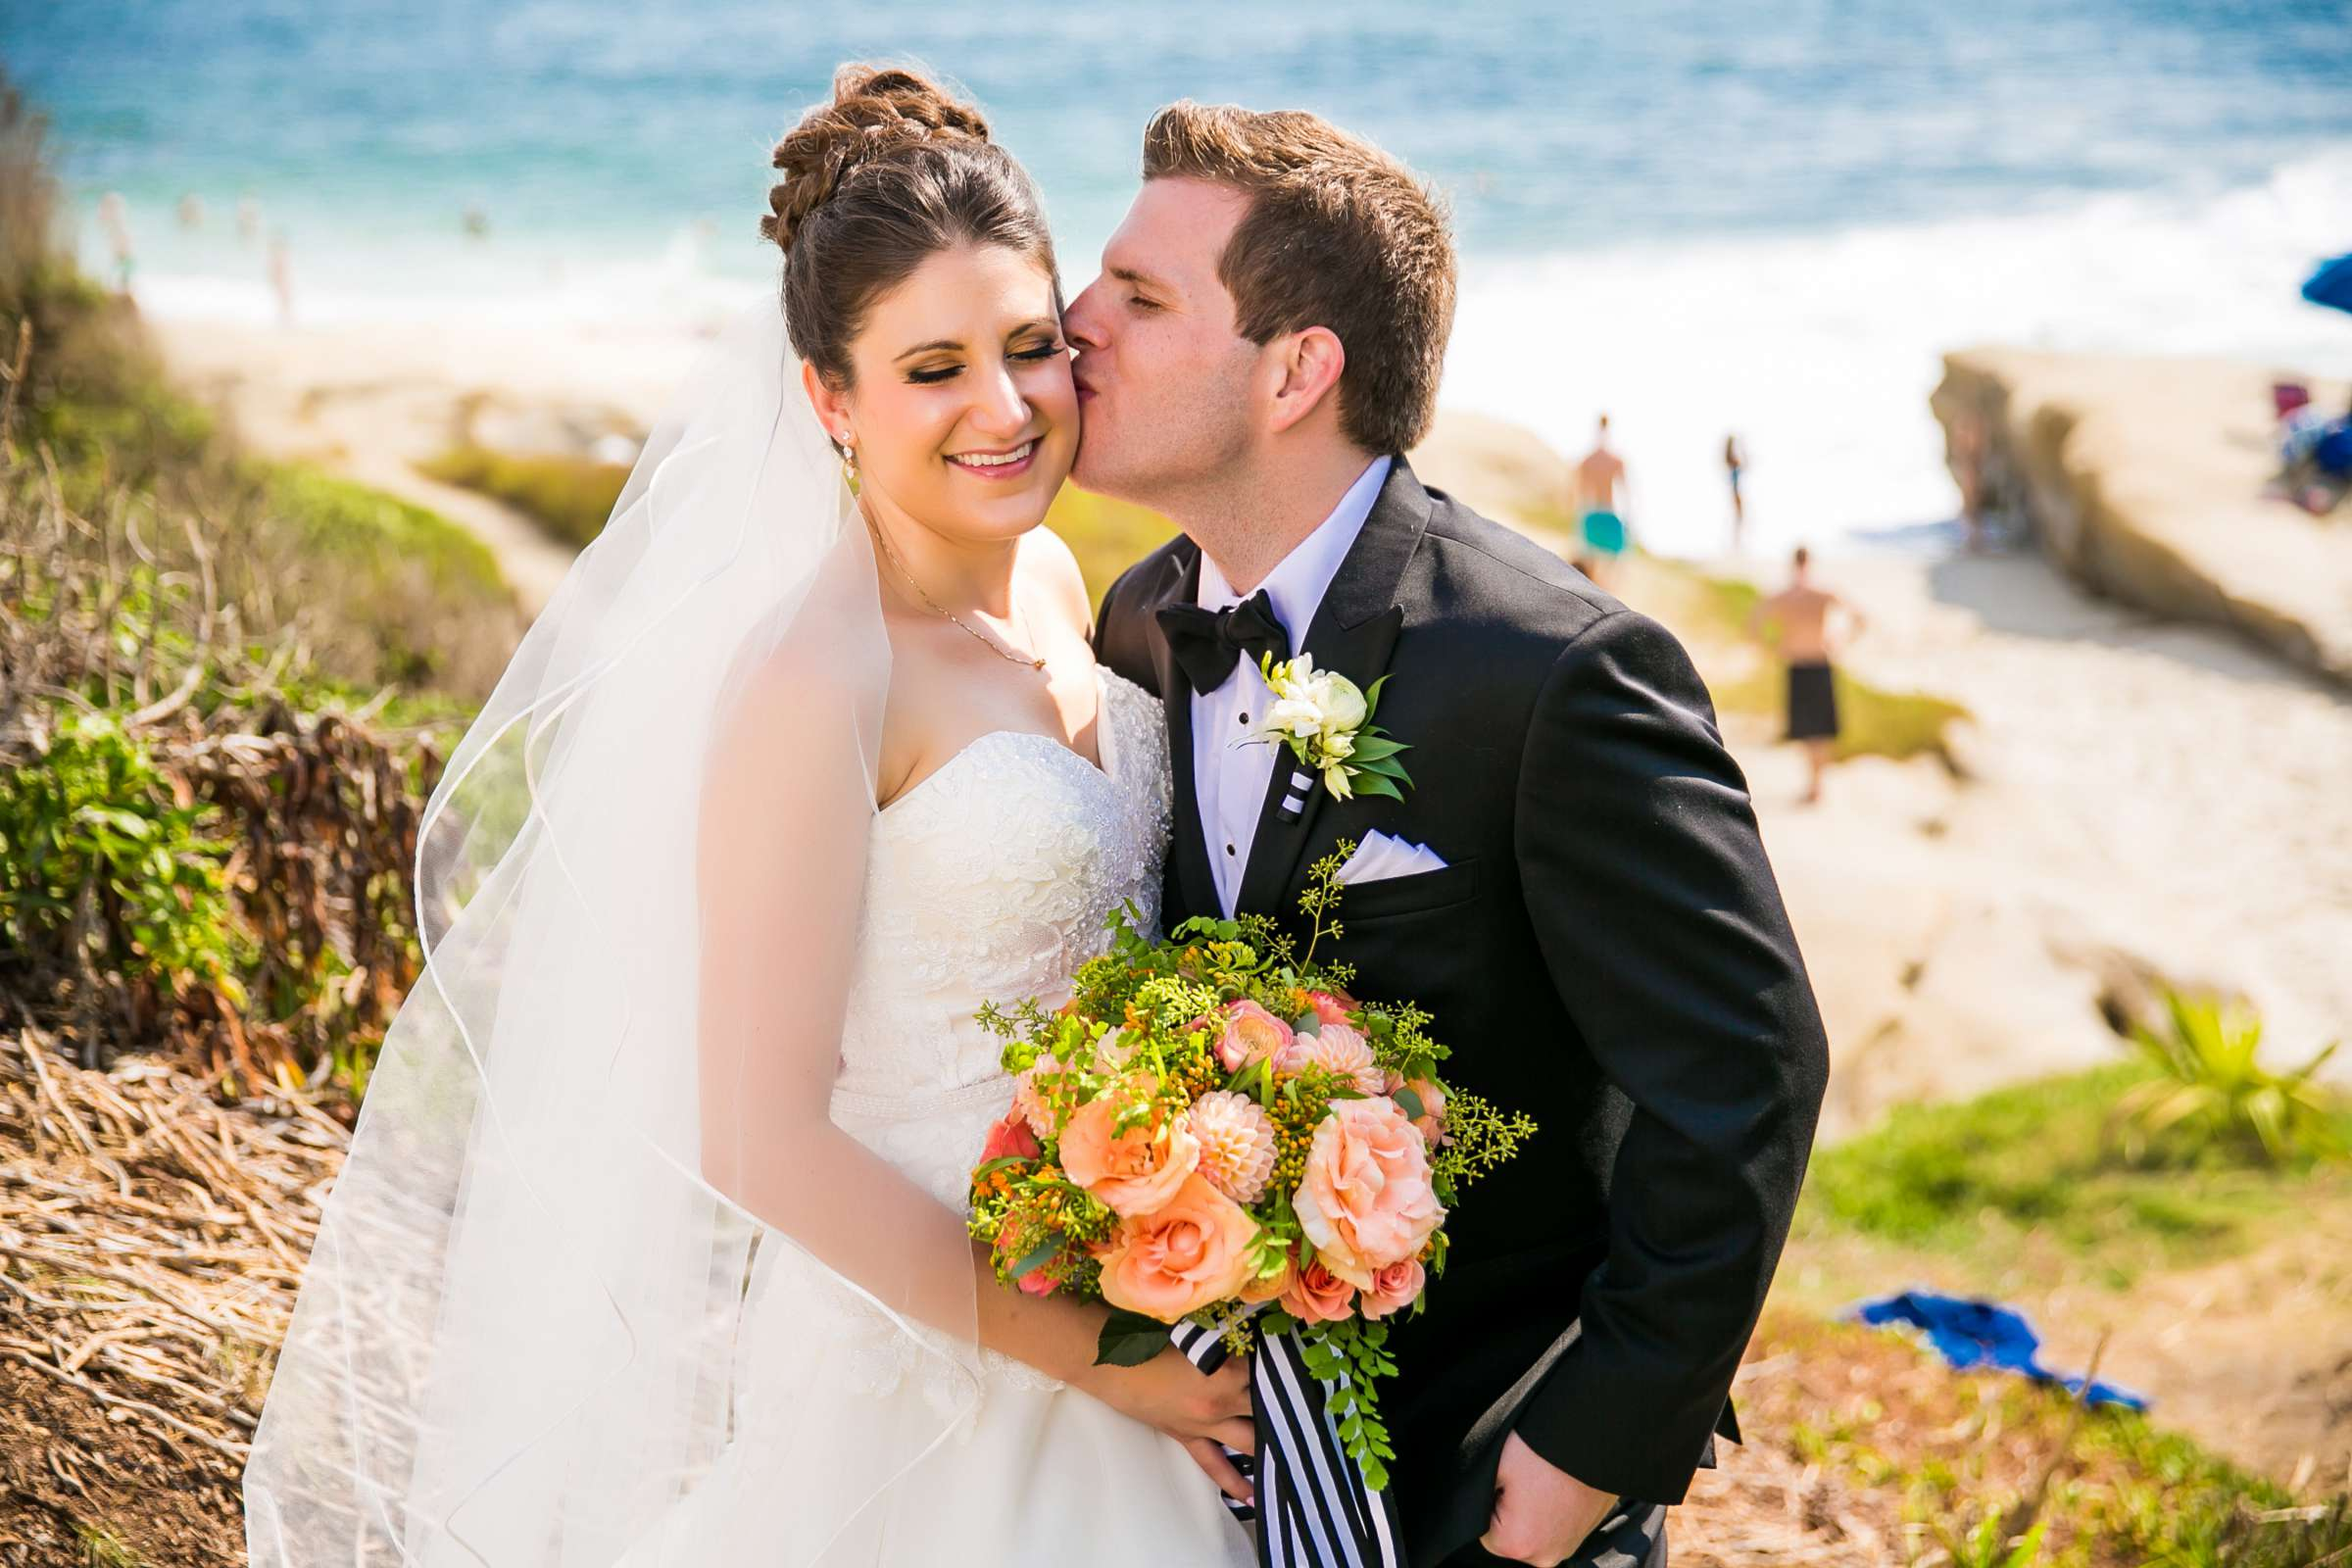 Bahia Hotel Wedding coordinated by I Do Weddings, Meredith and Jack Wedding Photo #59 by True Photography